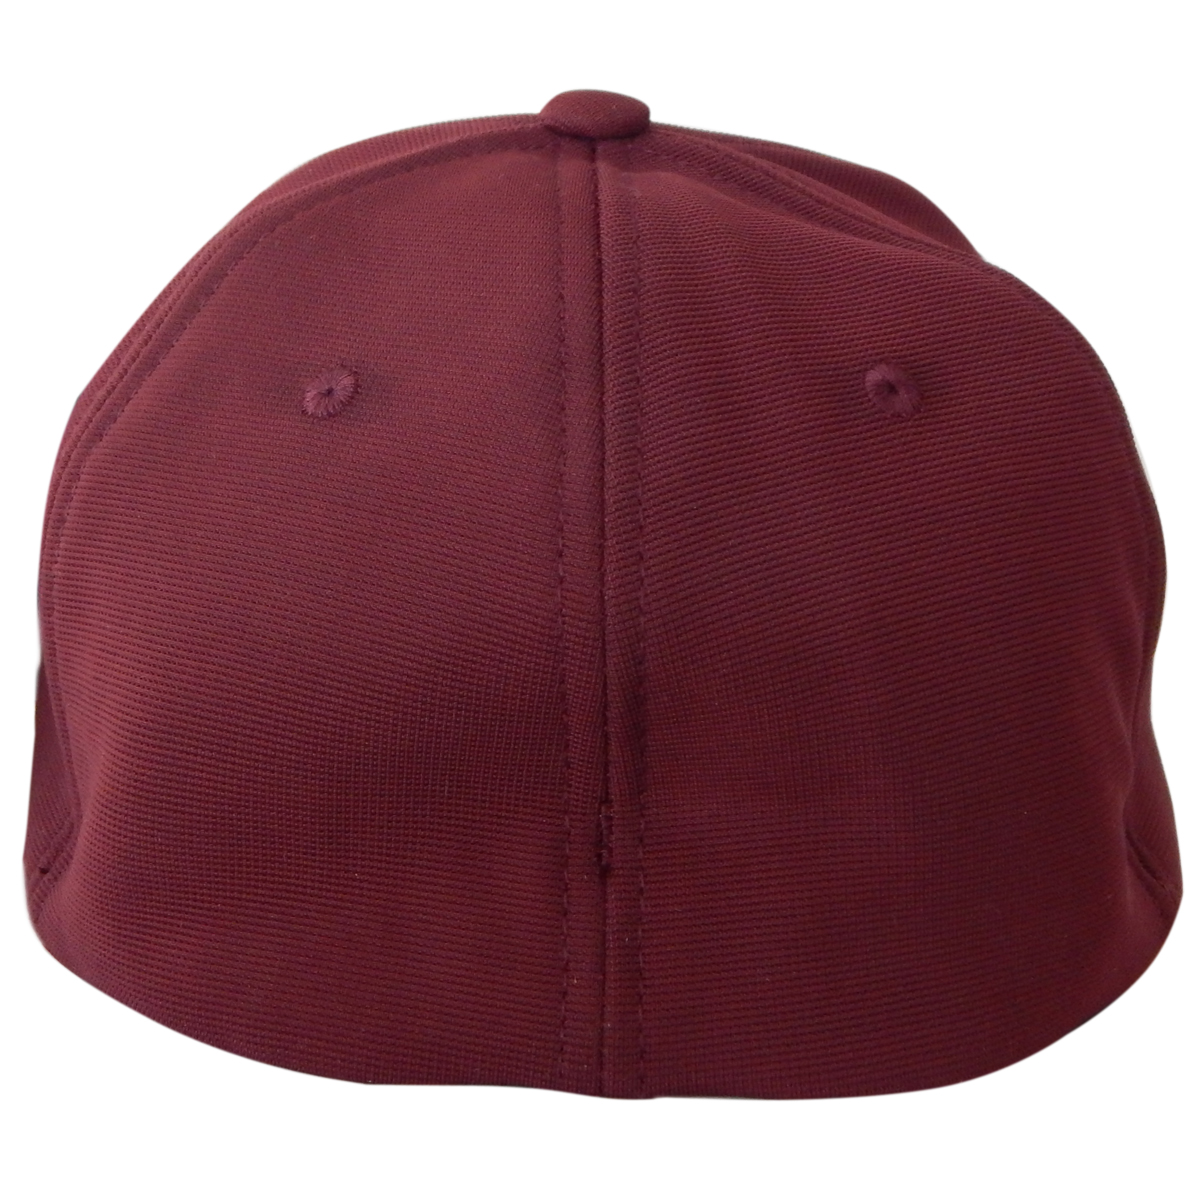 Boné Mormaii Flexcap Beach Cool Bordo ref 20947 11010dd4bd2